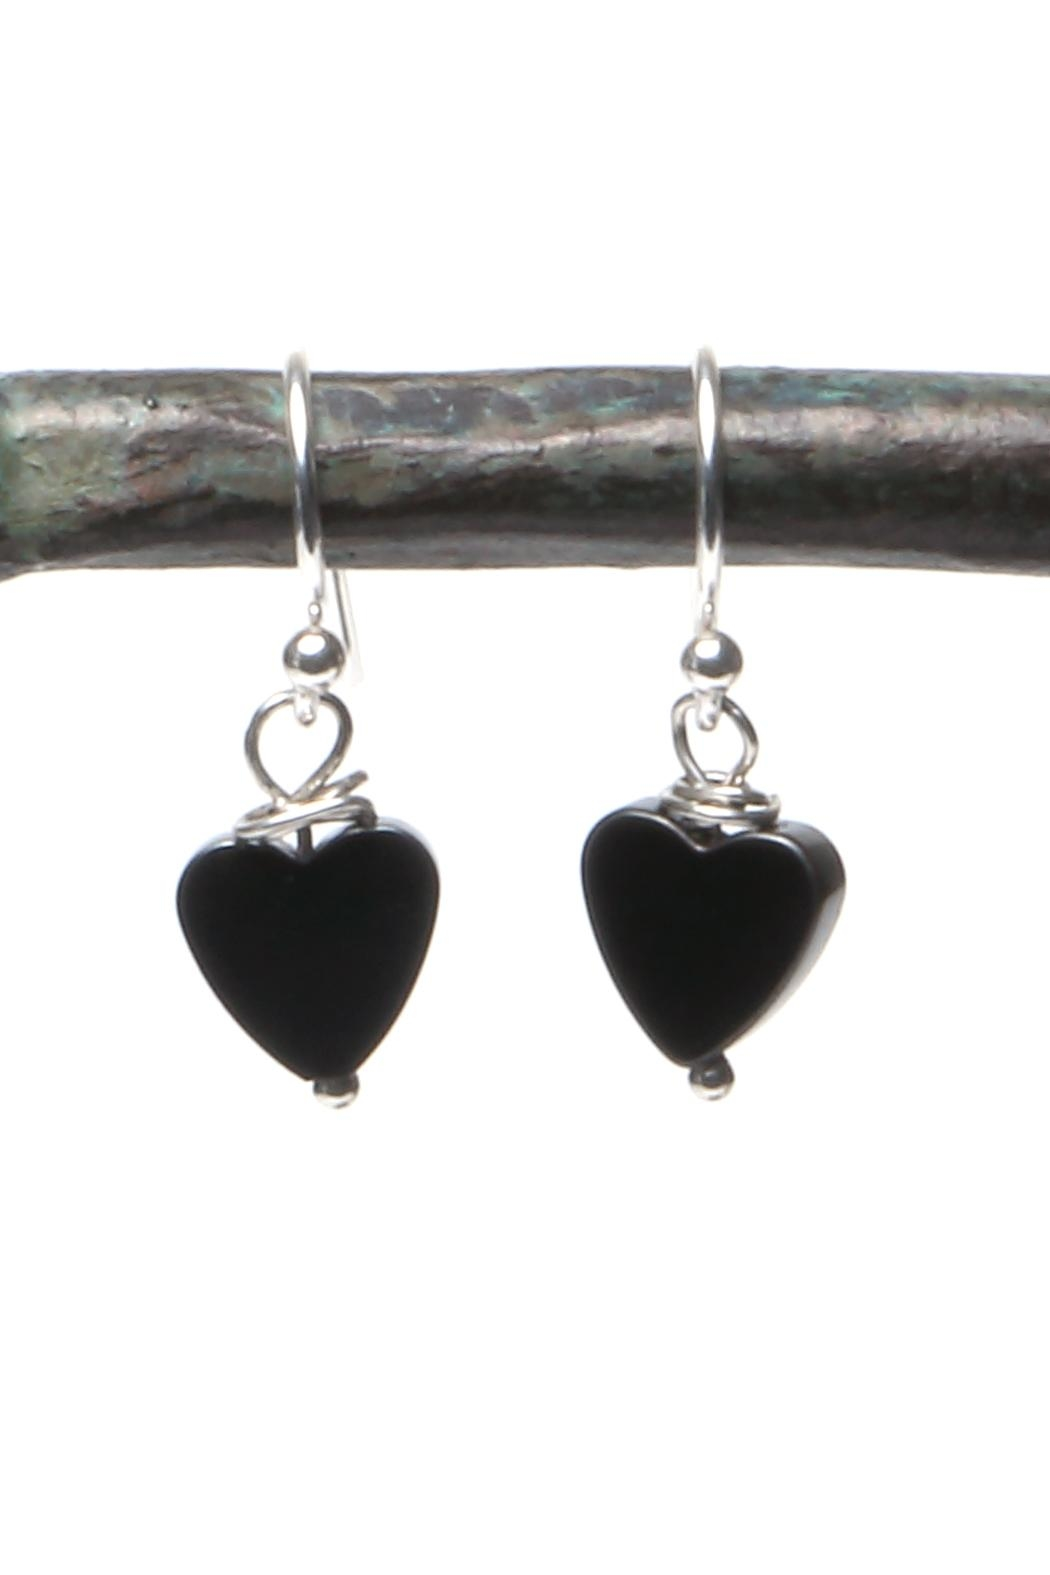 Cowgirl Chile Co. Jewelry Black Heart Earrings - Main Image